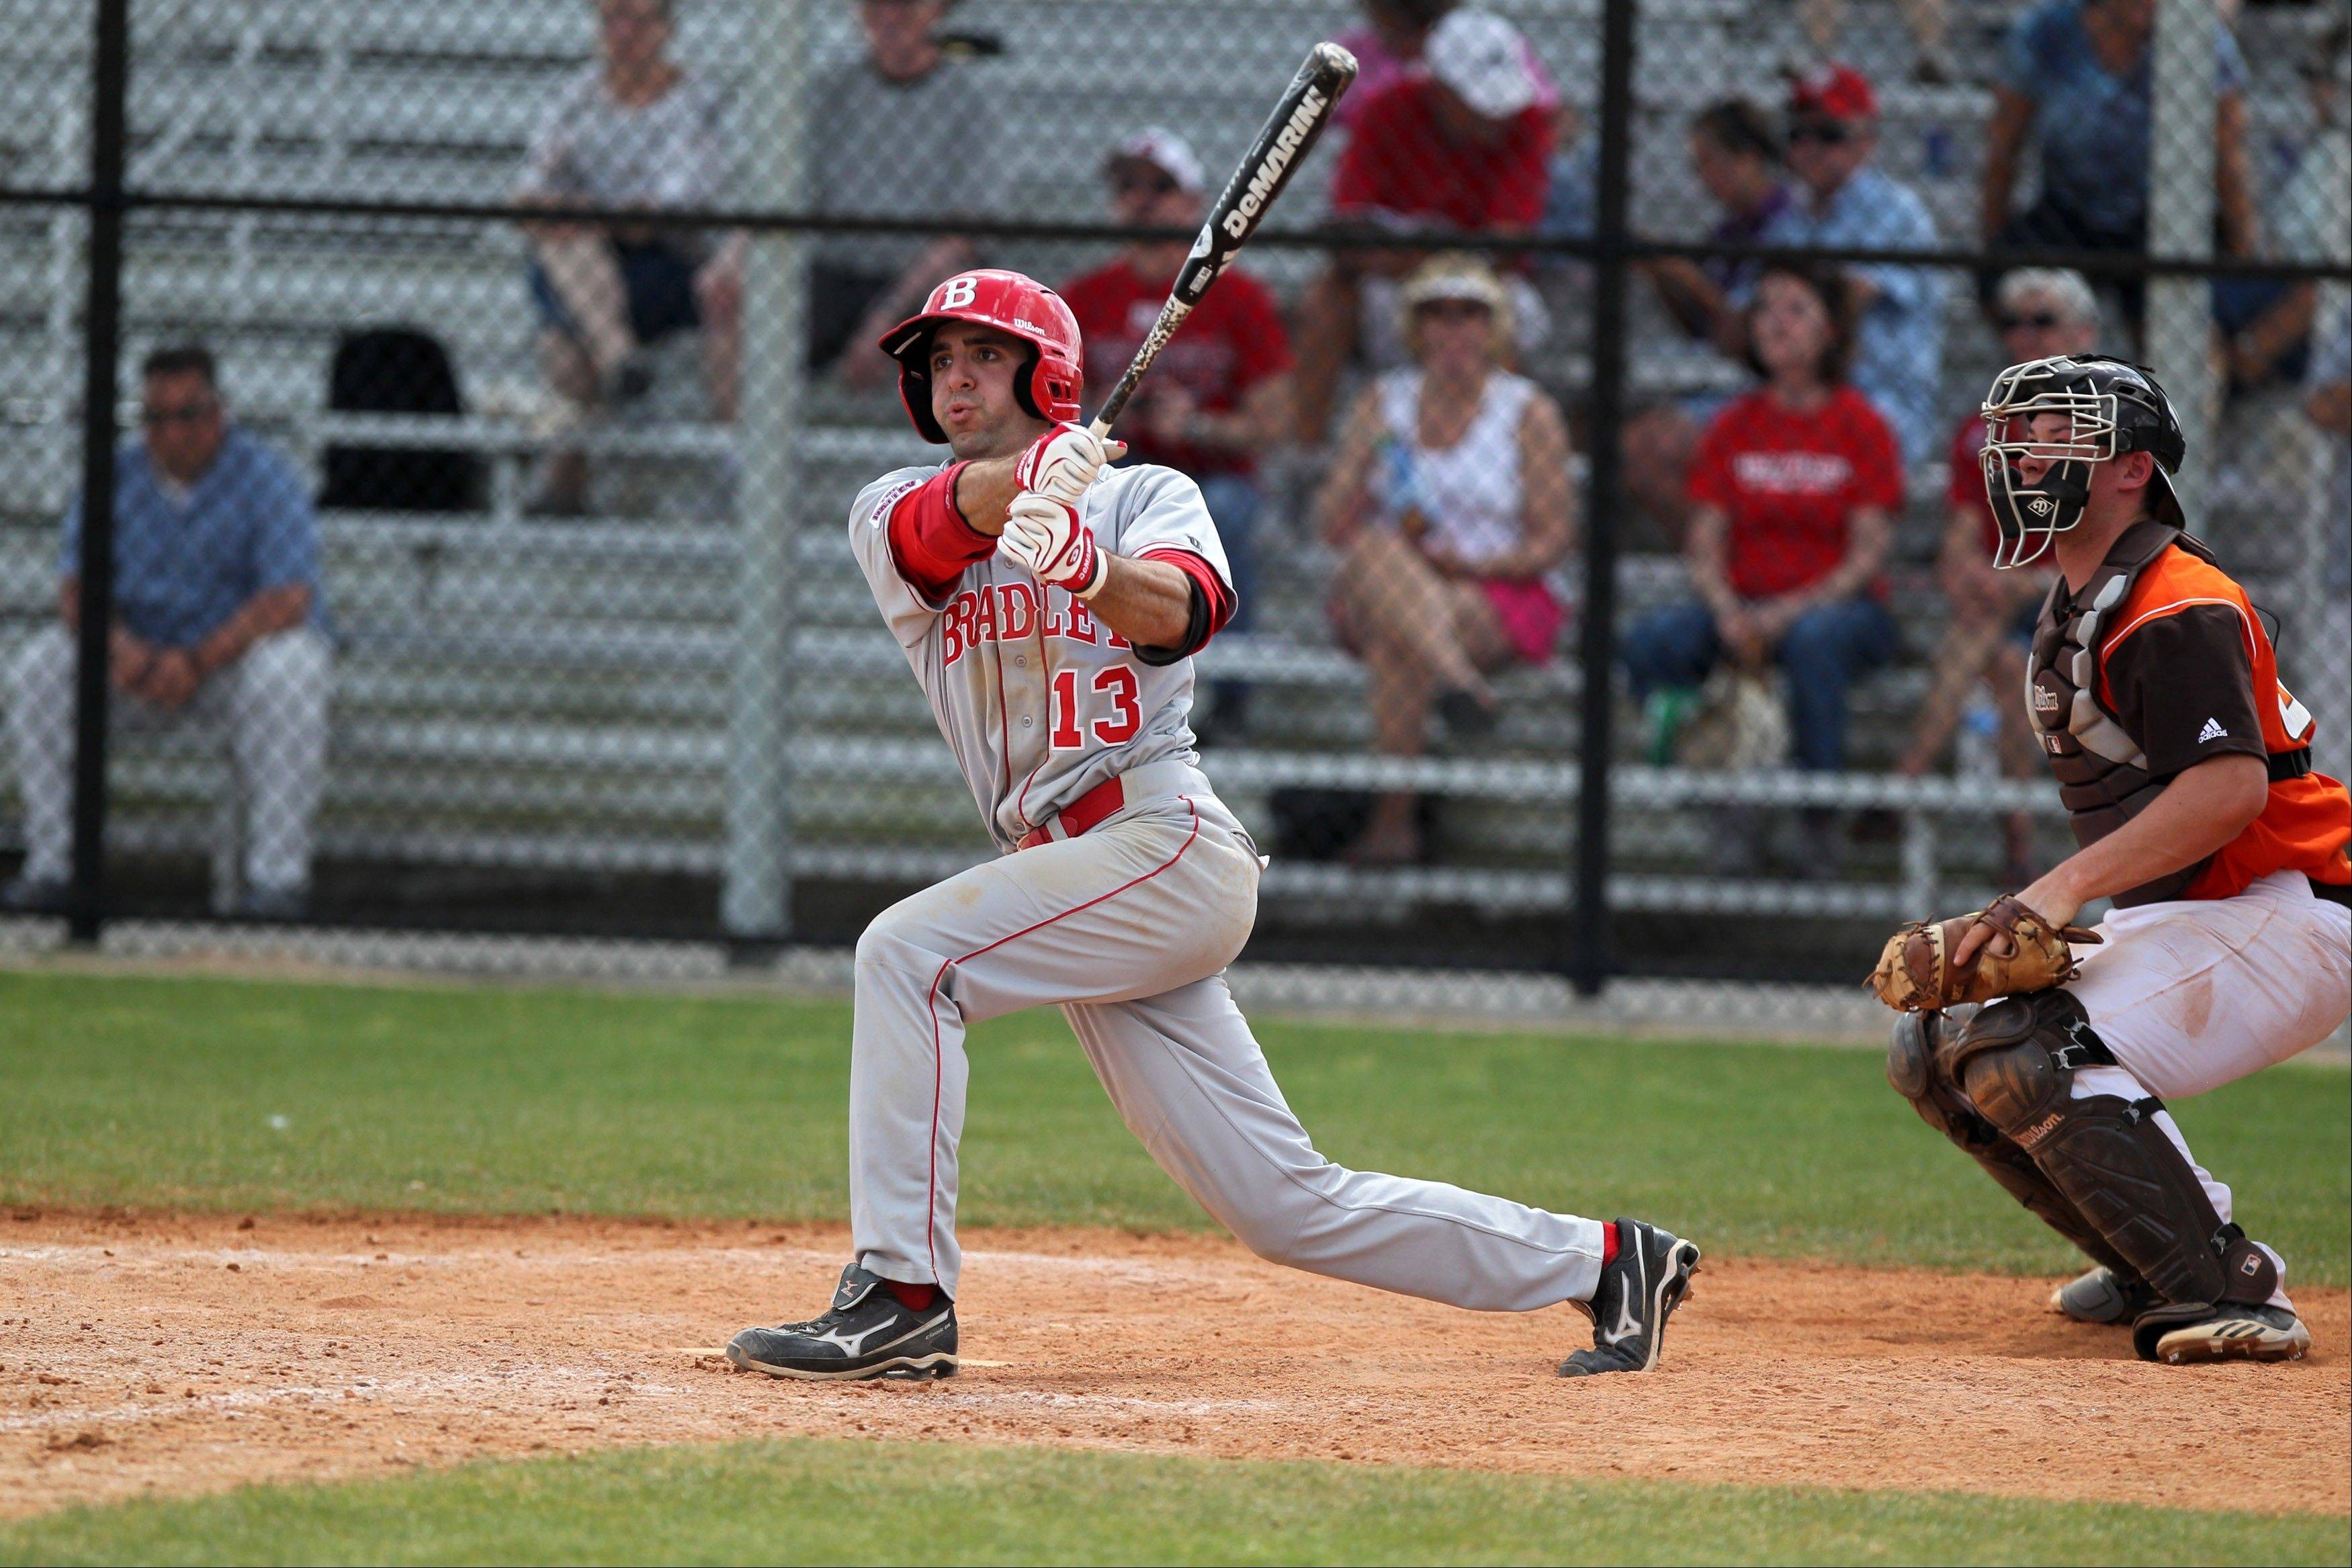 Jason Leblebijian connects while playing for the Bradley Braves against Bowling Green in March.